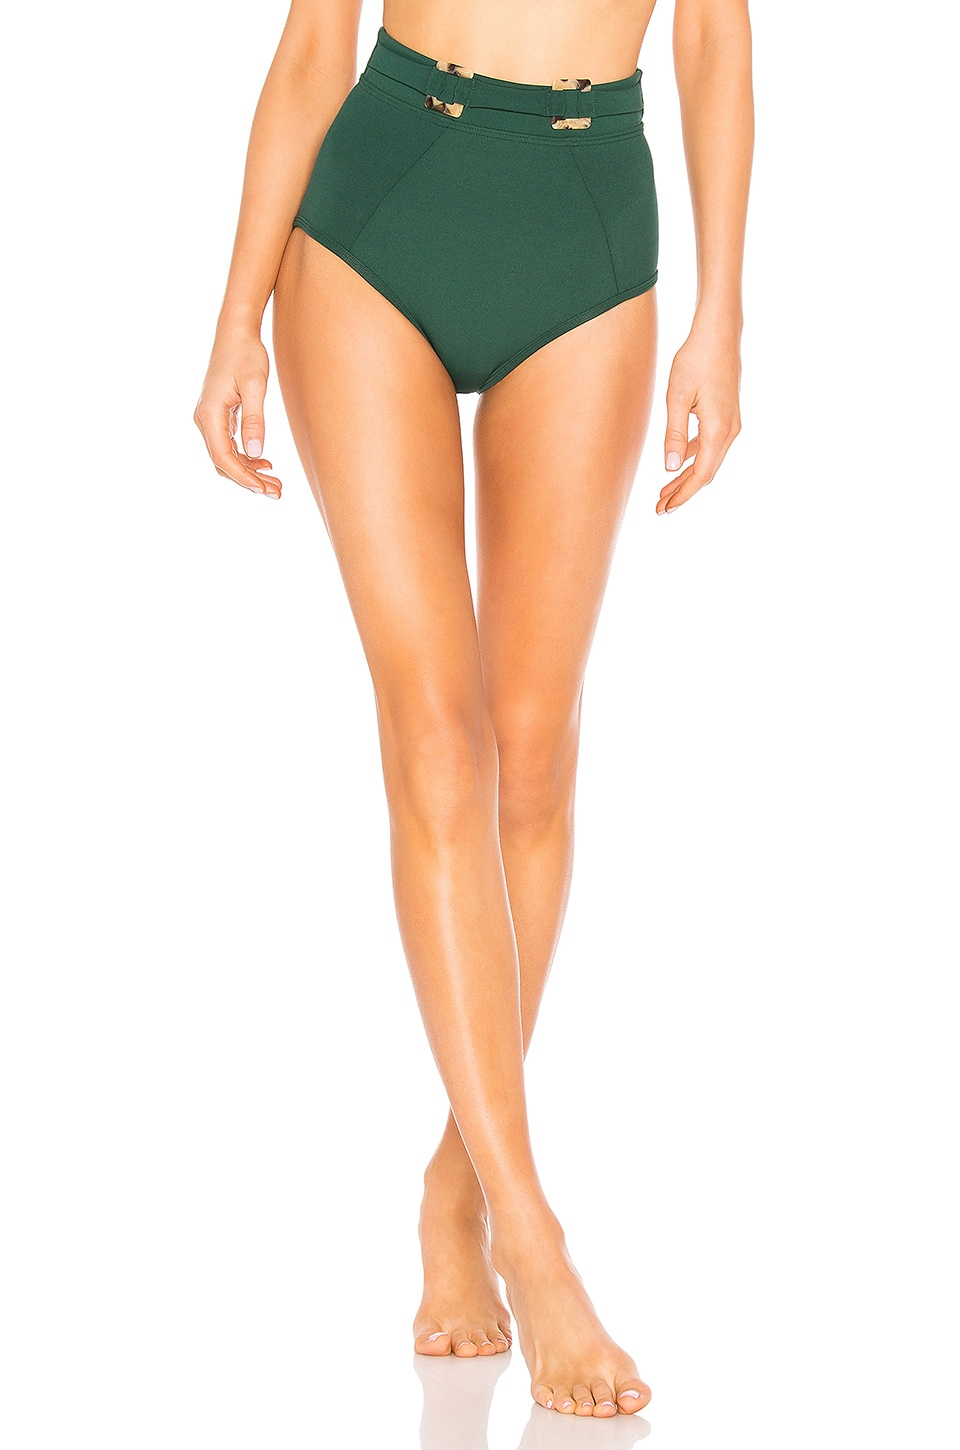 Suboo Jungalow Belted High Waisted Bikini Bottoms in Jungalow